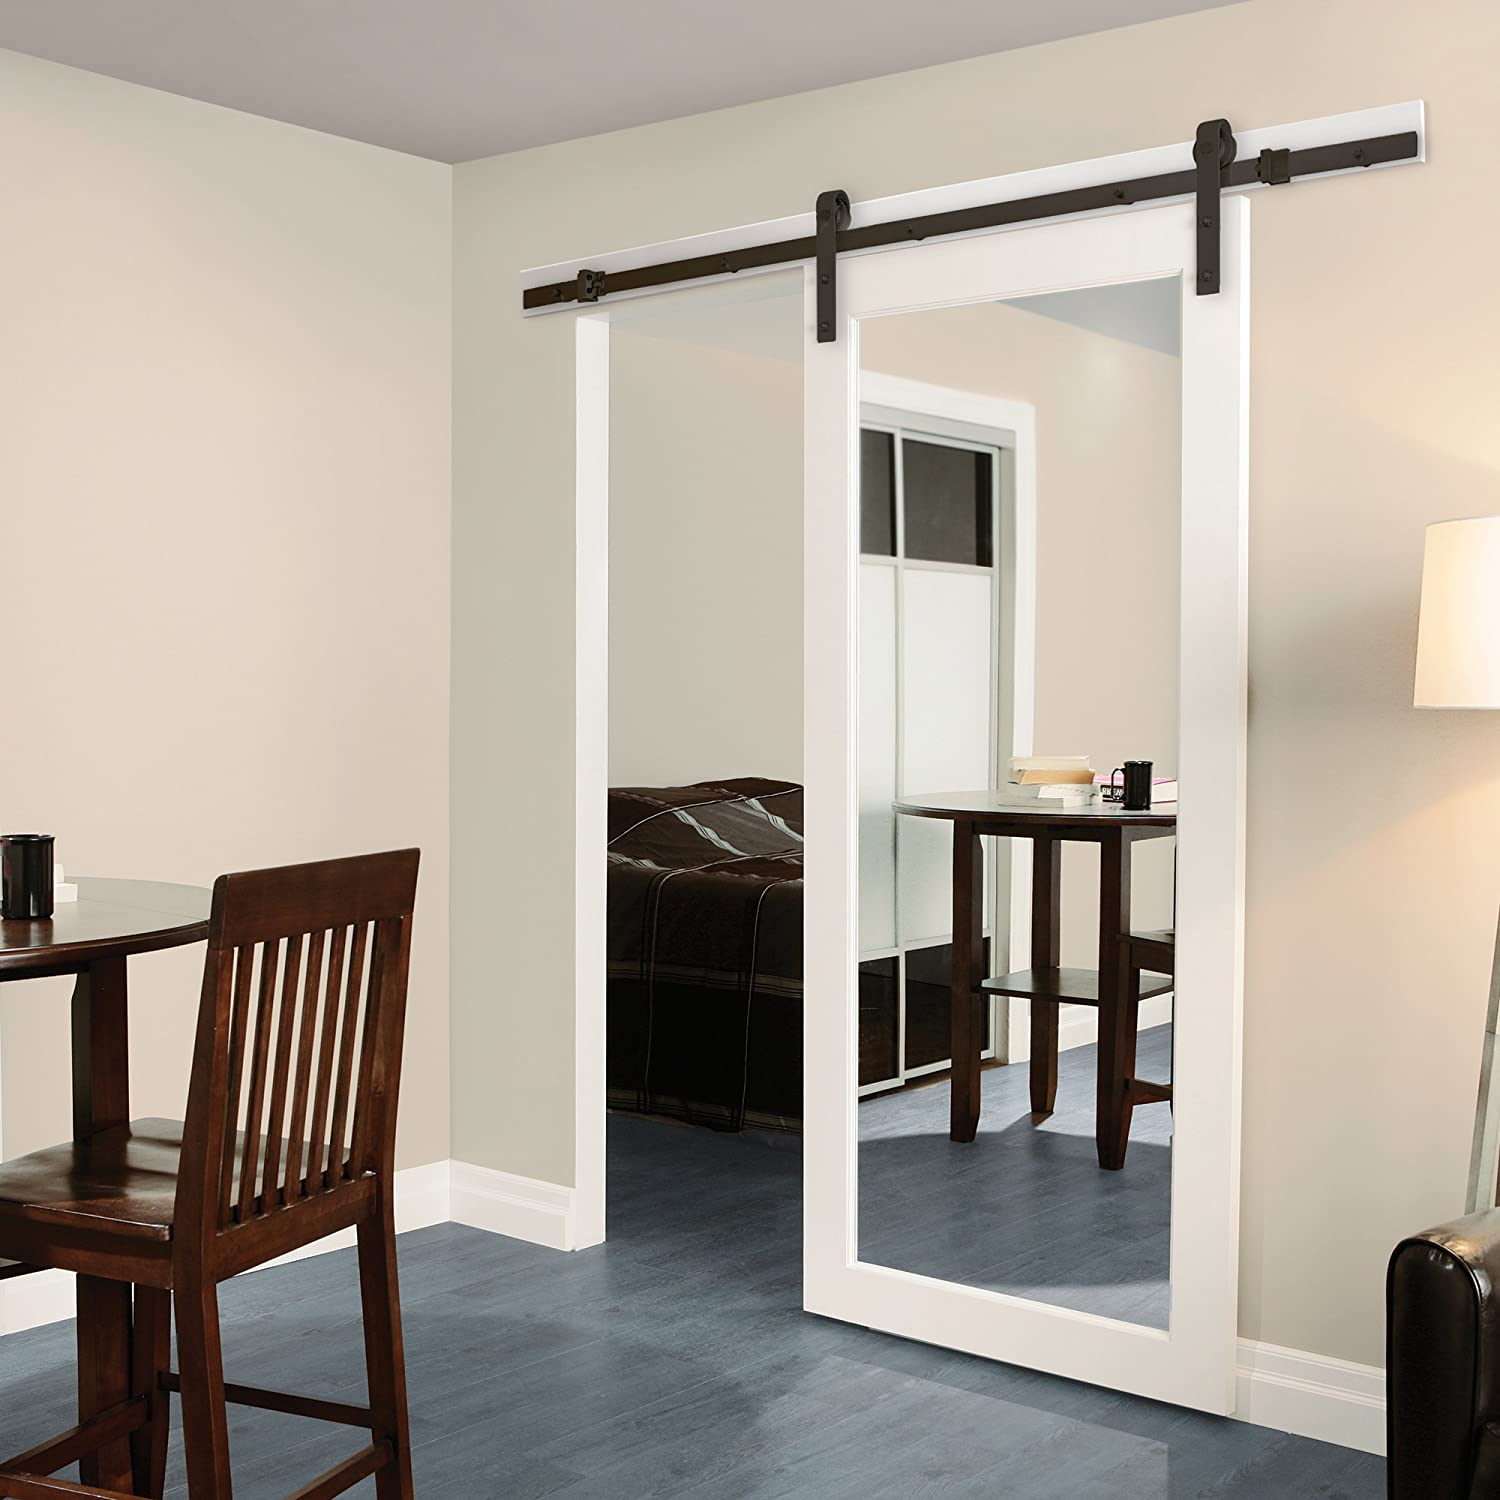 Sliding barn door hardware penn modern double door for Hardware for sliding barn doors flat track